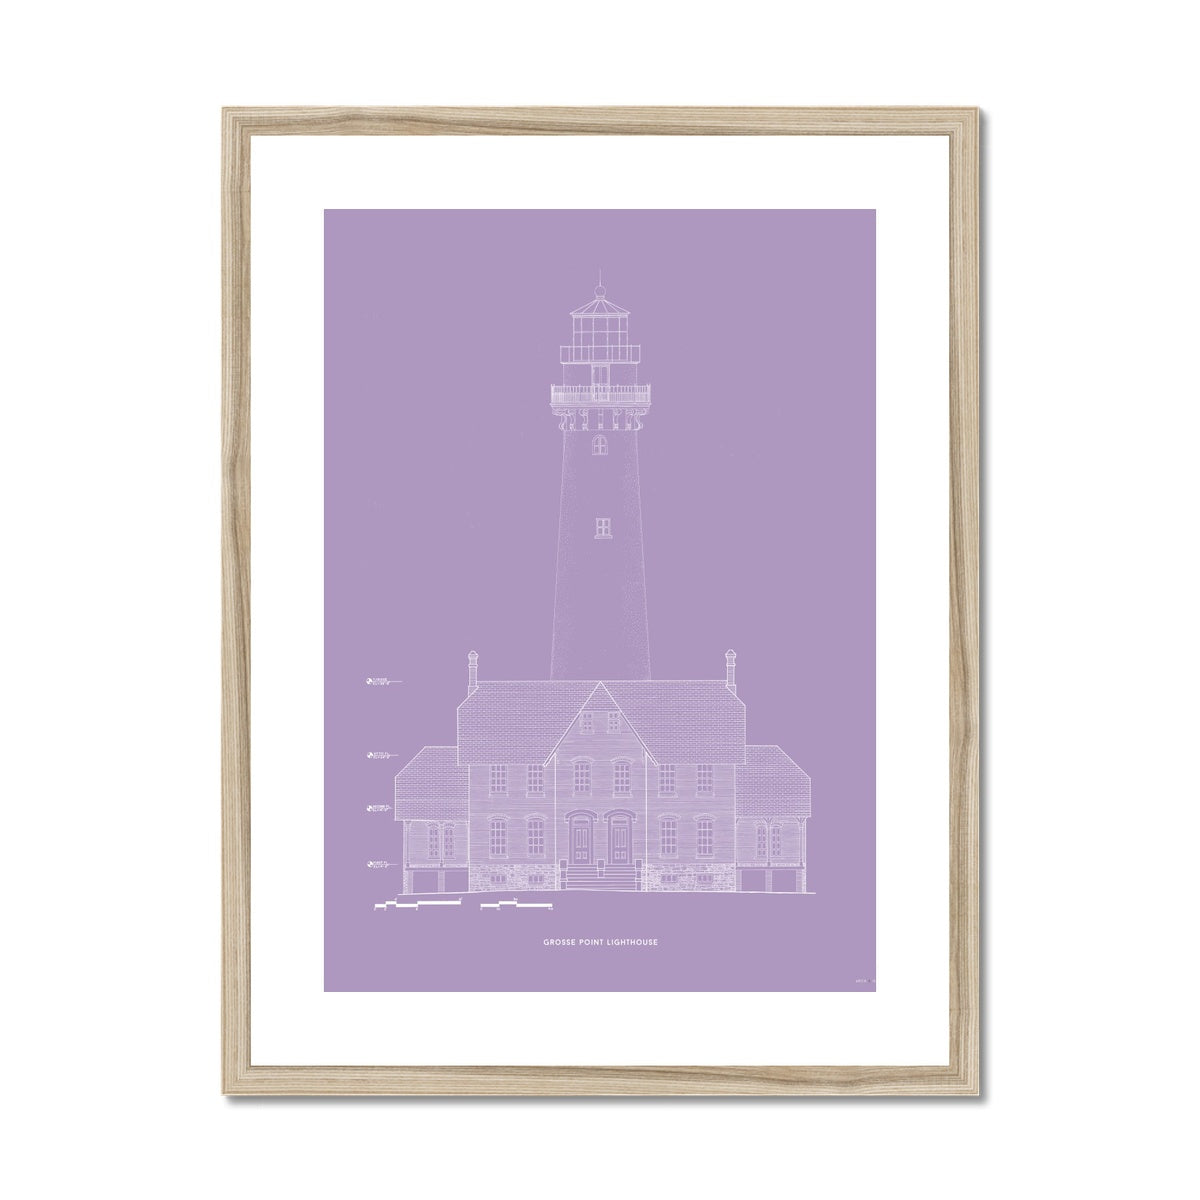 Grosse Point Lighthouse - West Elevation - Lavender -  Framed & Mounted Print